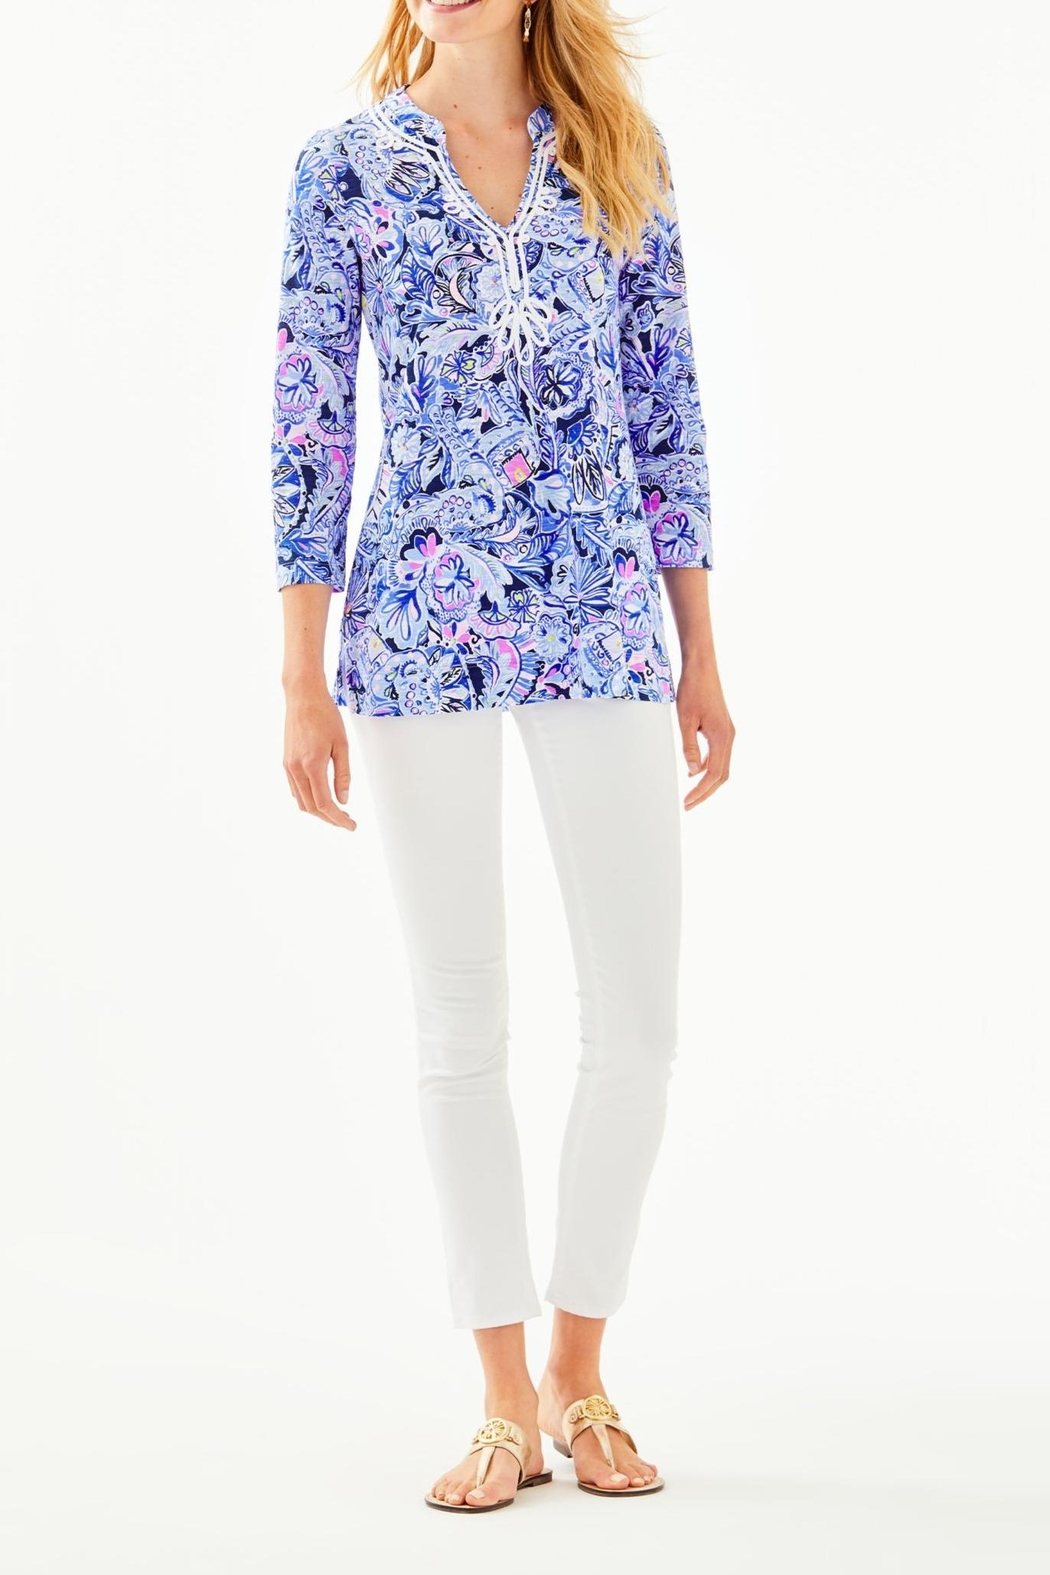 Lilly Pulitzer Kaia Knit Tunic - Side Cropped Image